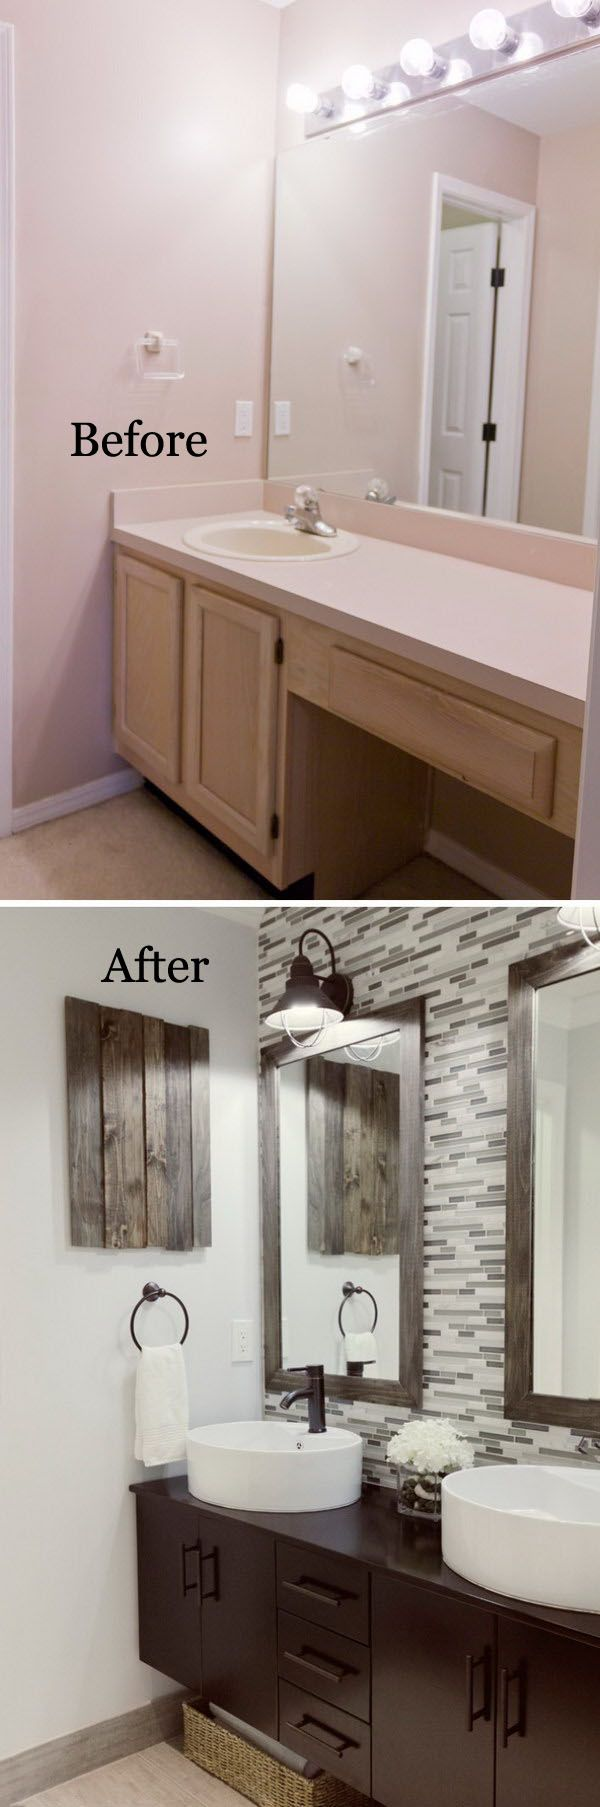 best 25+ house remodeling ideas on pinterest | diy kitchen remodel